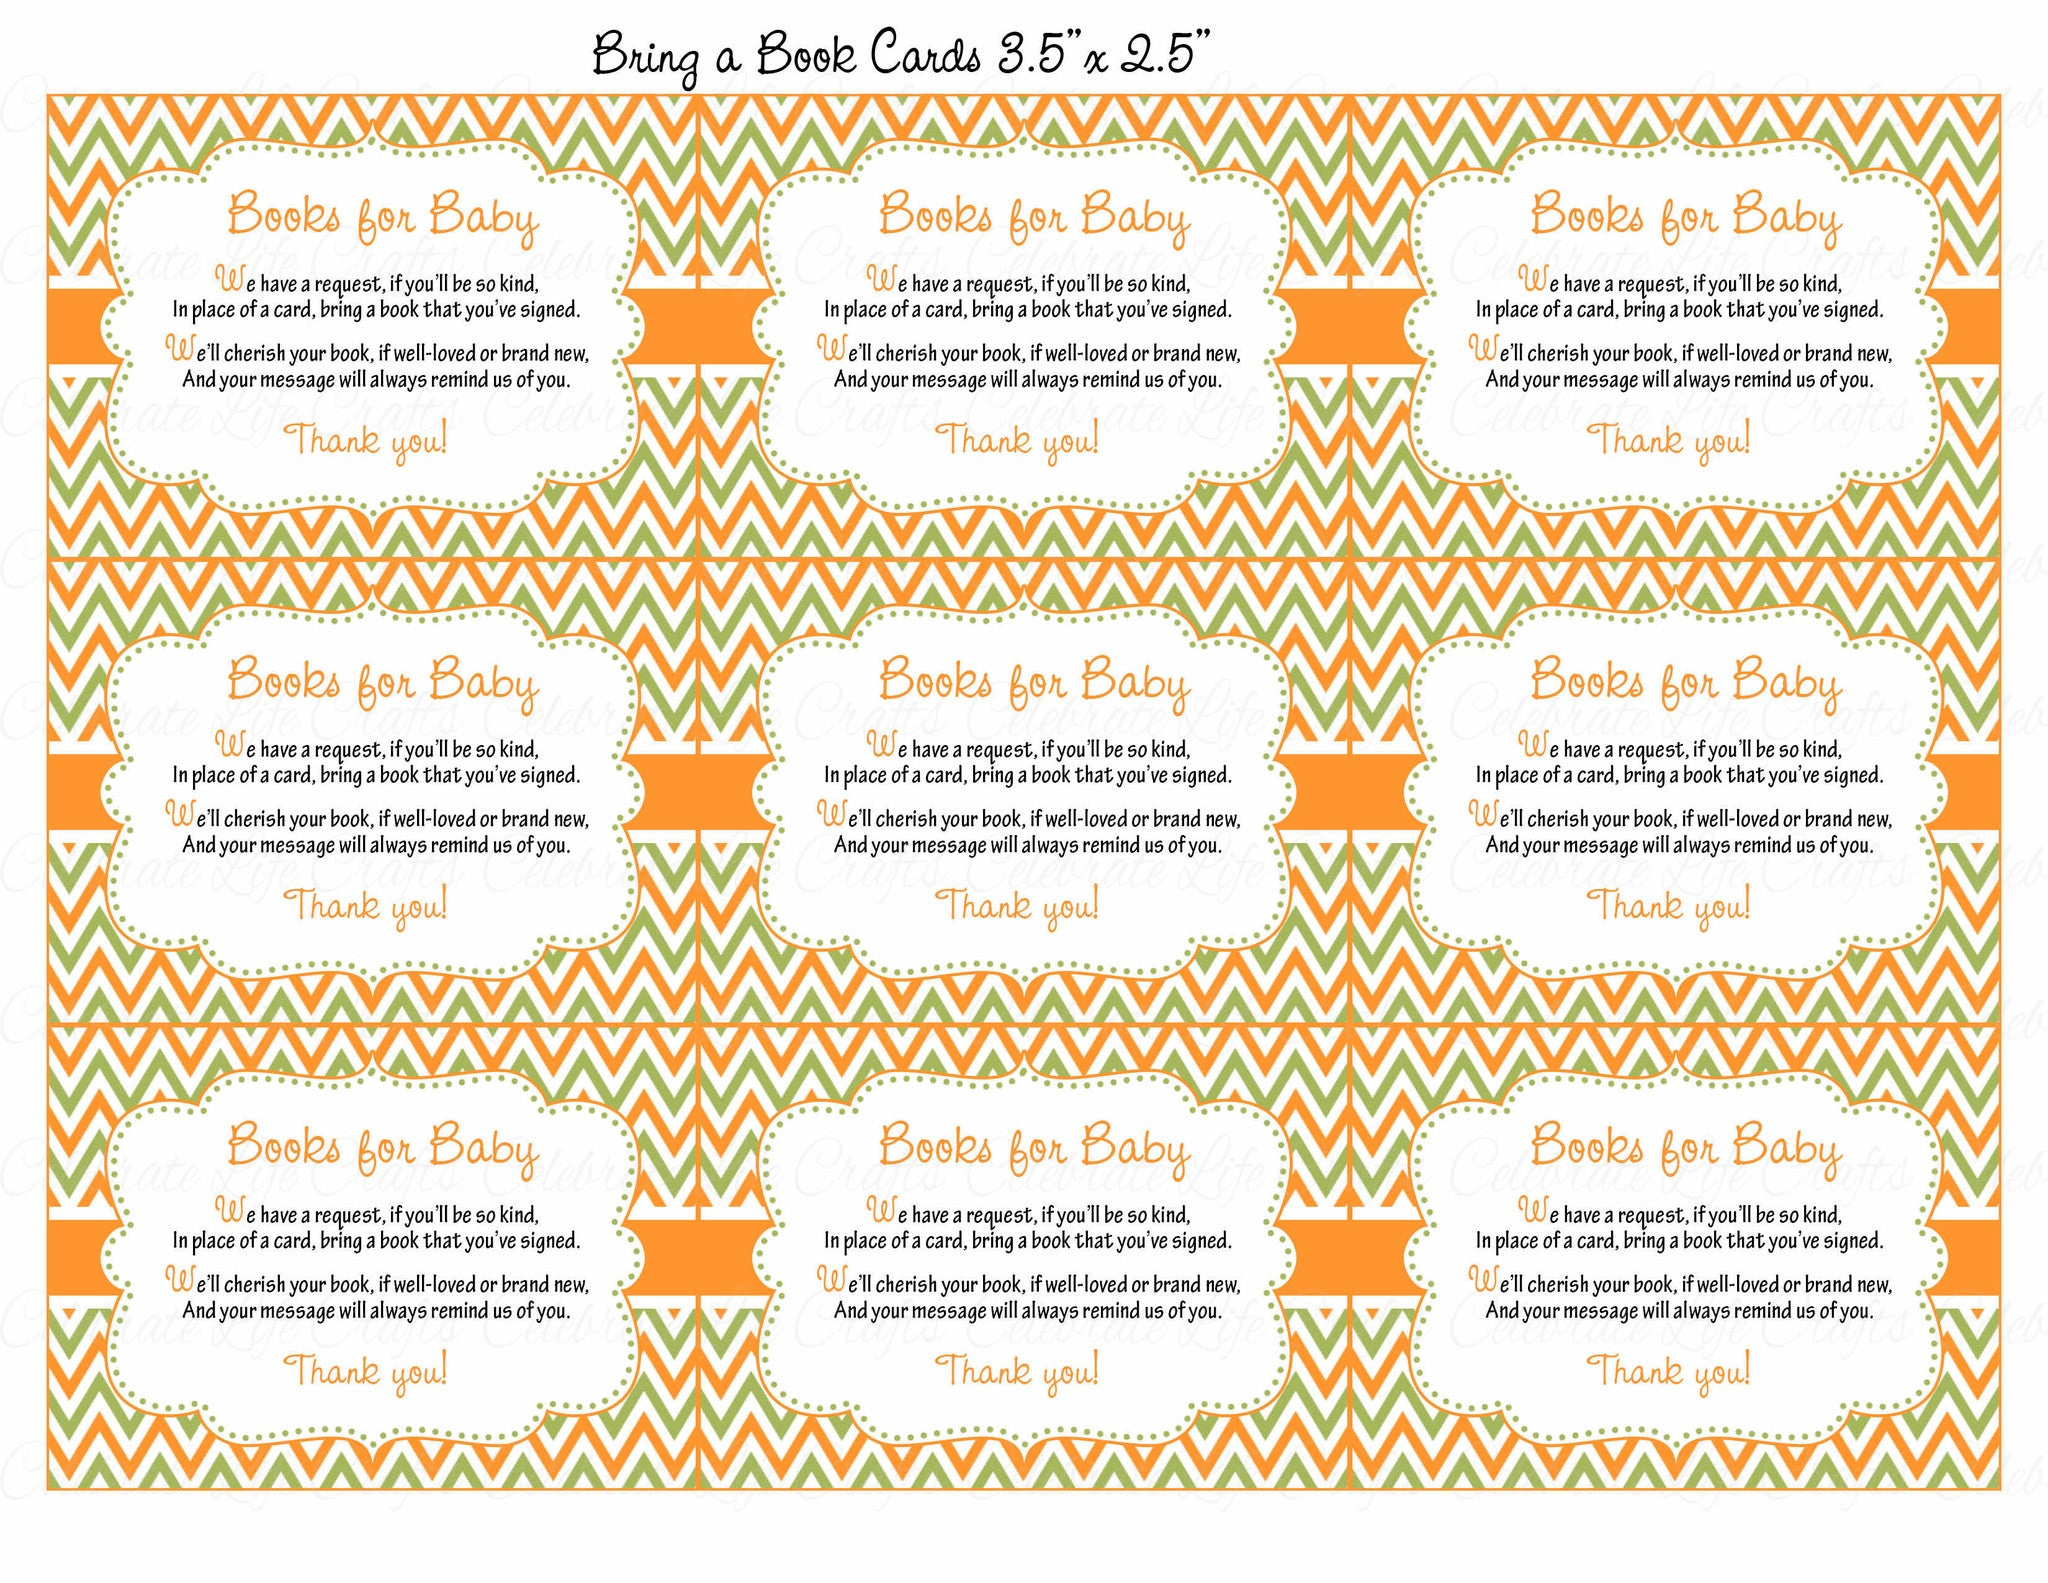 ... Books For Baby Cards   Printable Download   Orange U0026 Green Baby Shower  Invitation Inserts